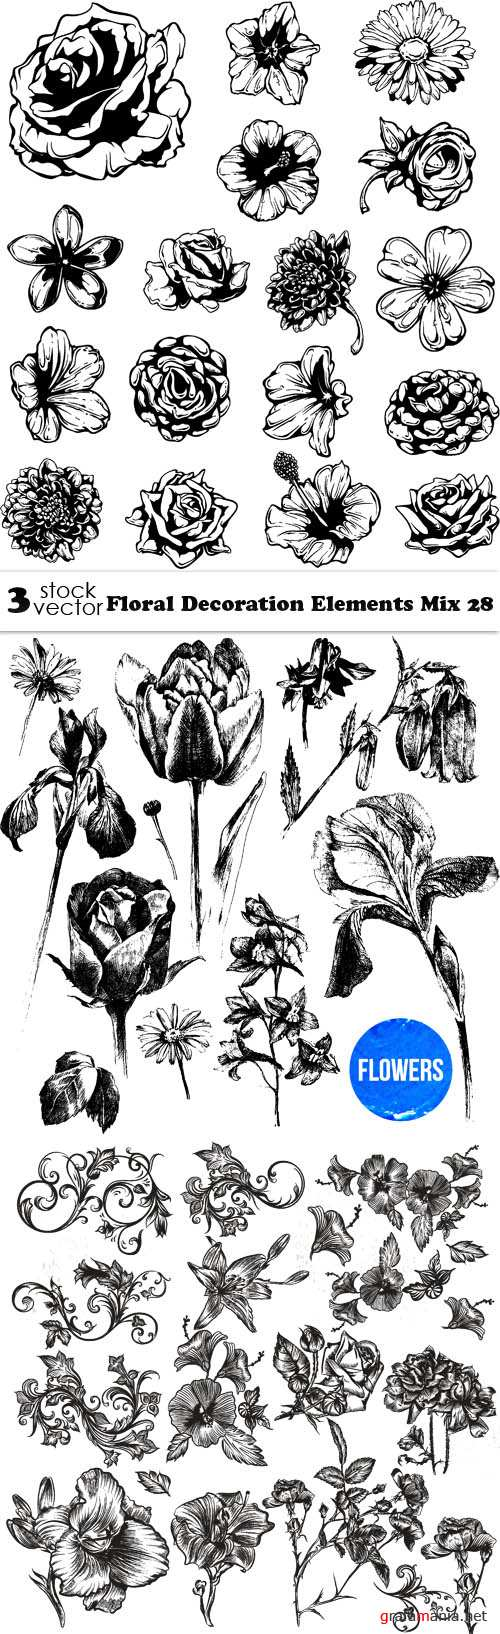 Vectors - Floral Decoration Elements Mix 28